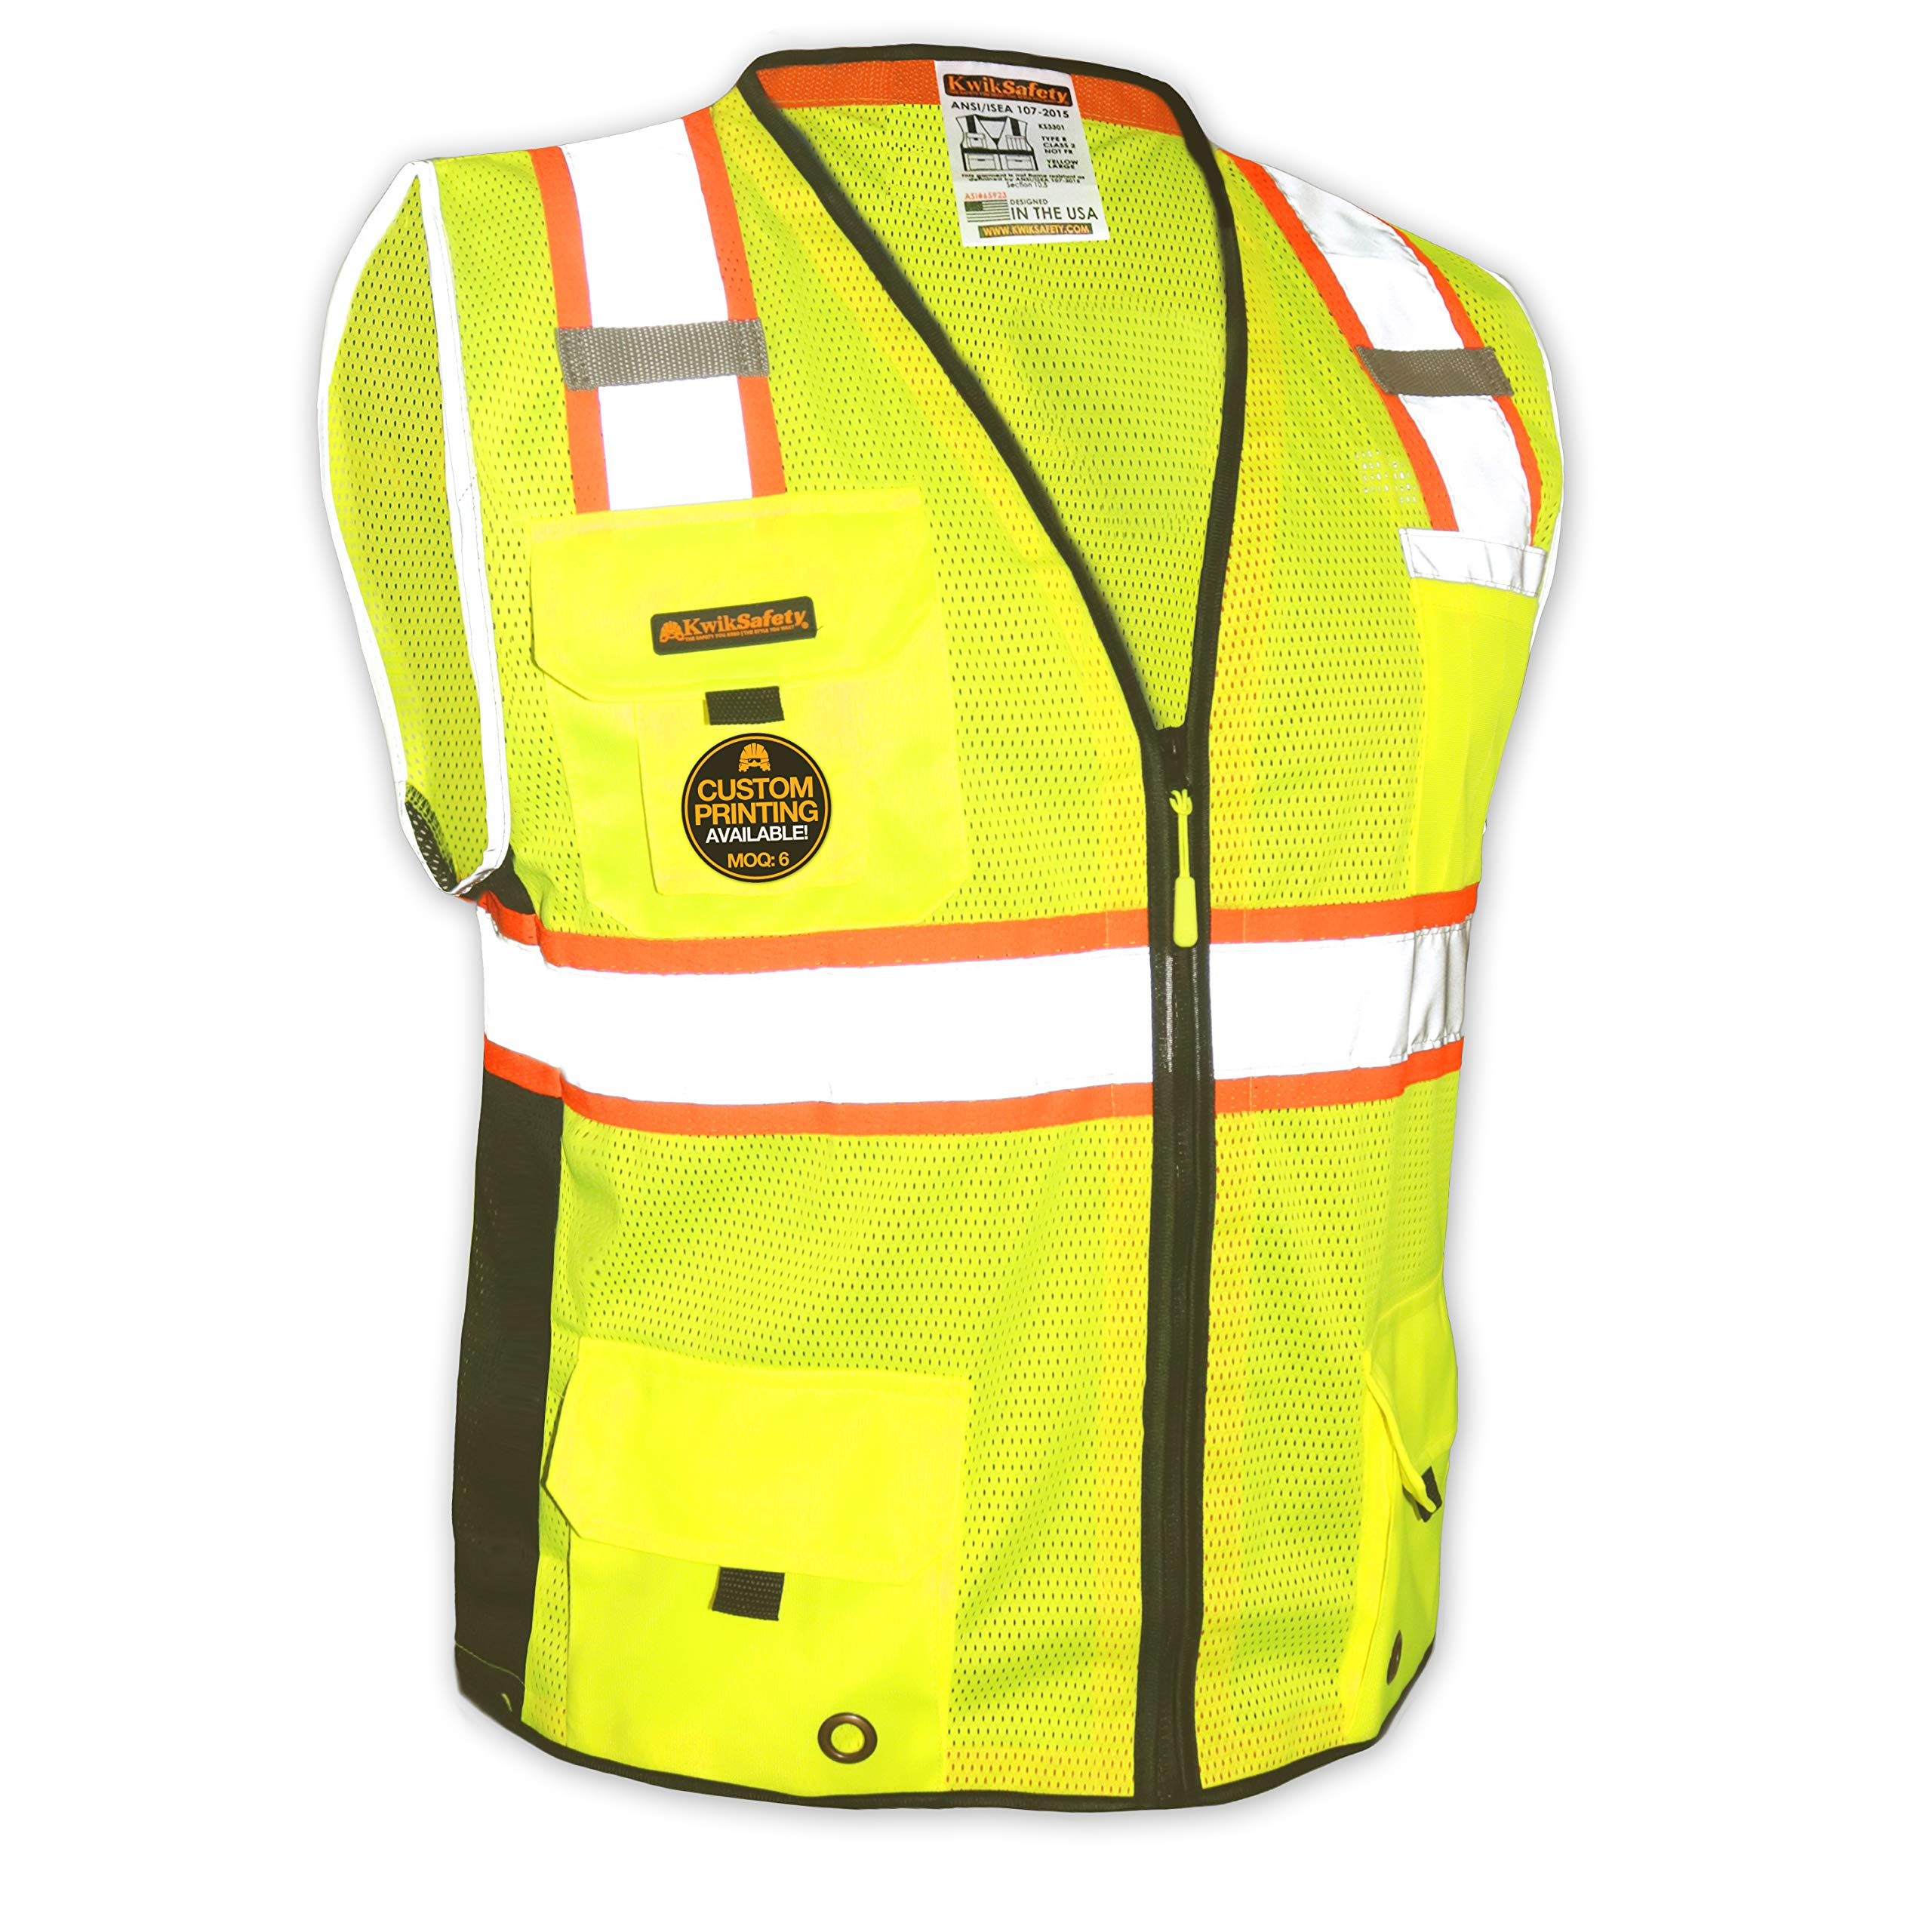 KwikSafety (Charlotte, NC) BIG KAHUNA (11 Pockets) Class 2 ANSI High Visibility Reflective Safety Vest Heavy Duty Mesh with Zipper and HiVis for OSHA Construction Work HiViz Men Yellow Black Small